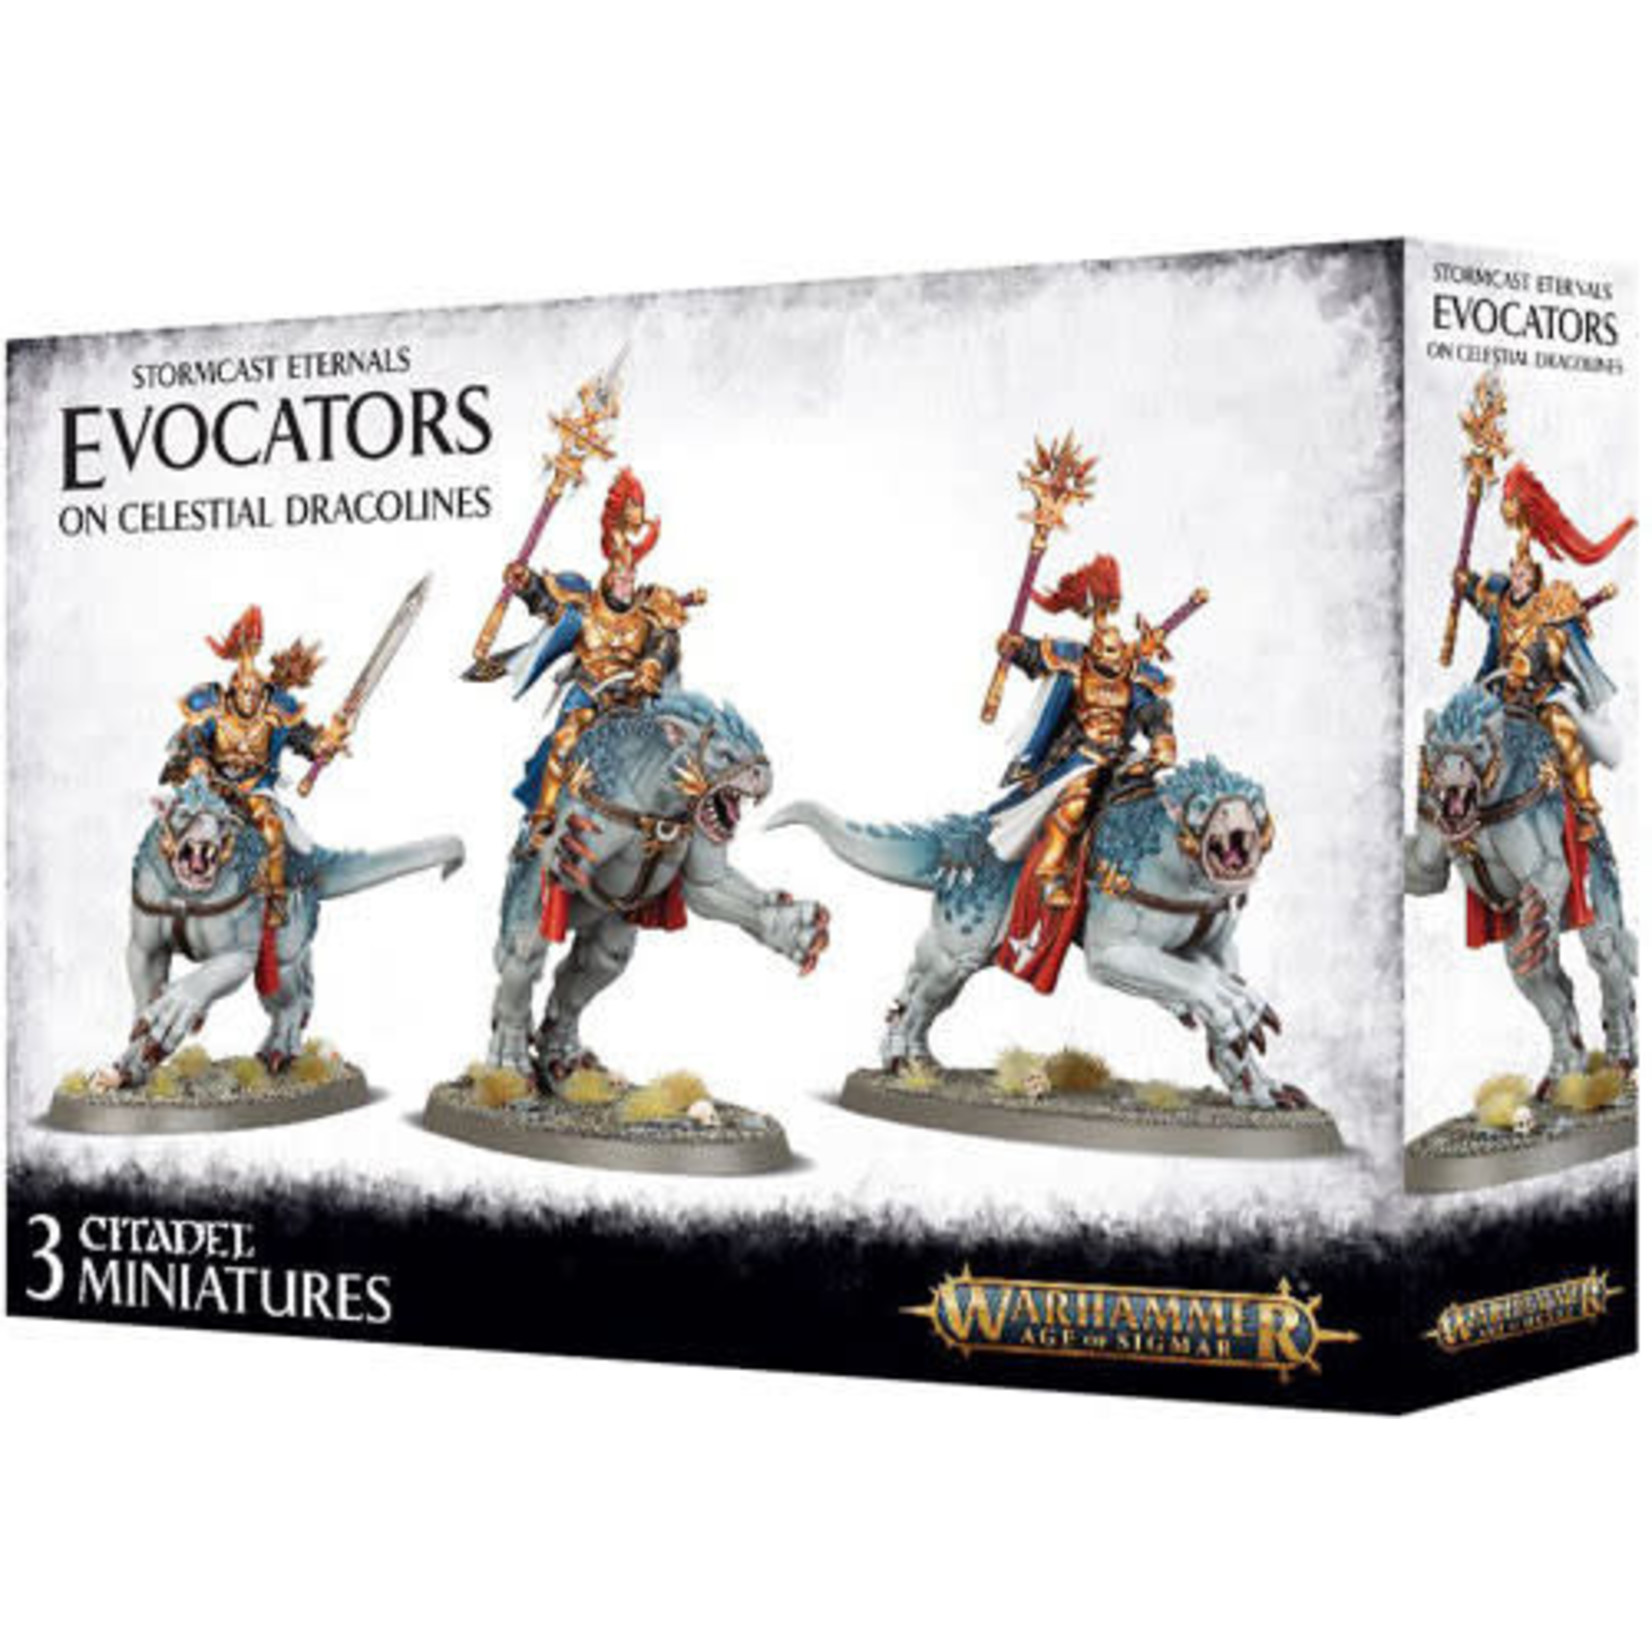 Evocators on Celestial Dracolines (AOS)